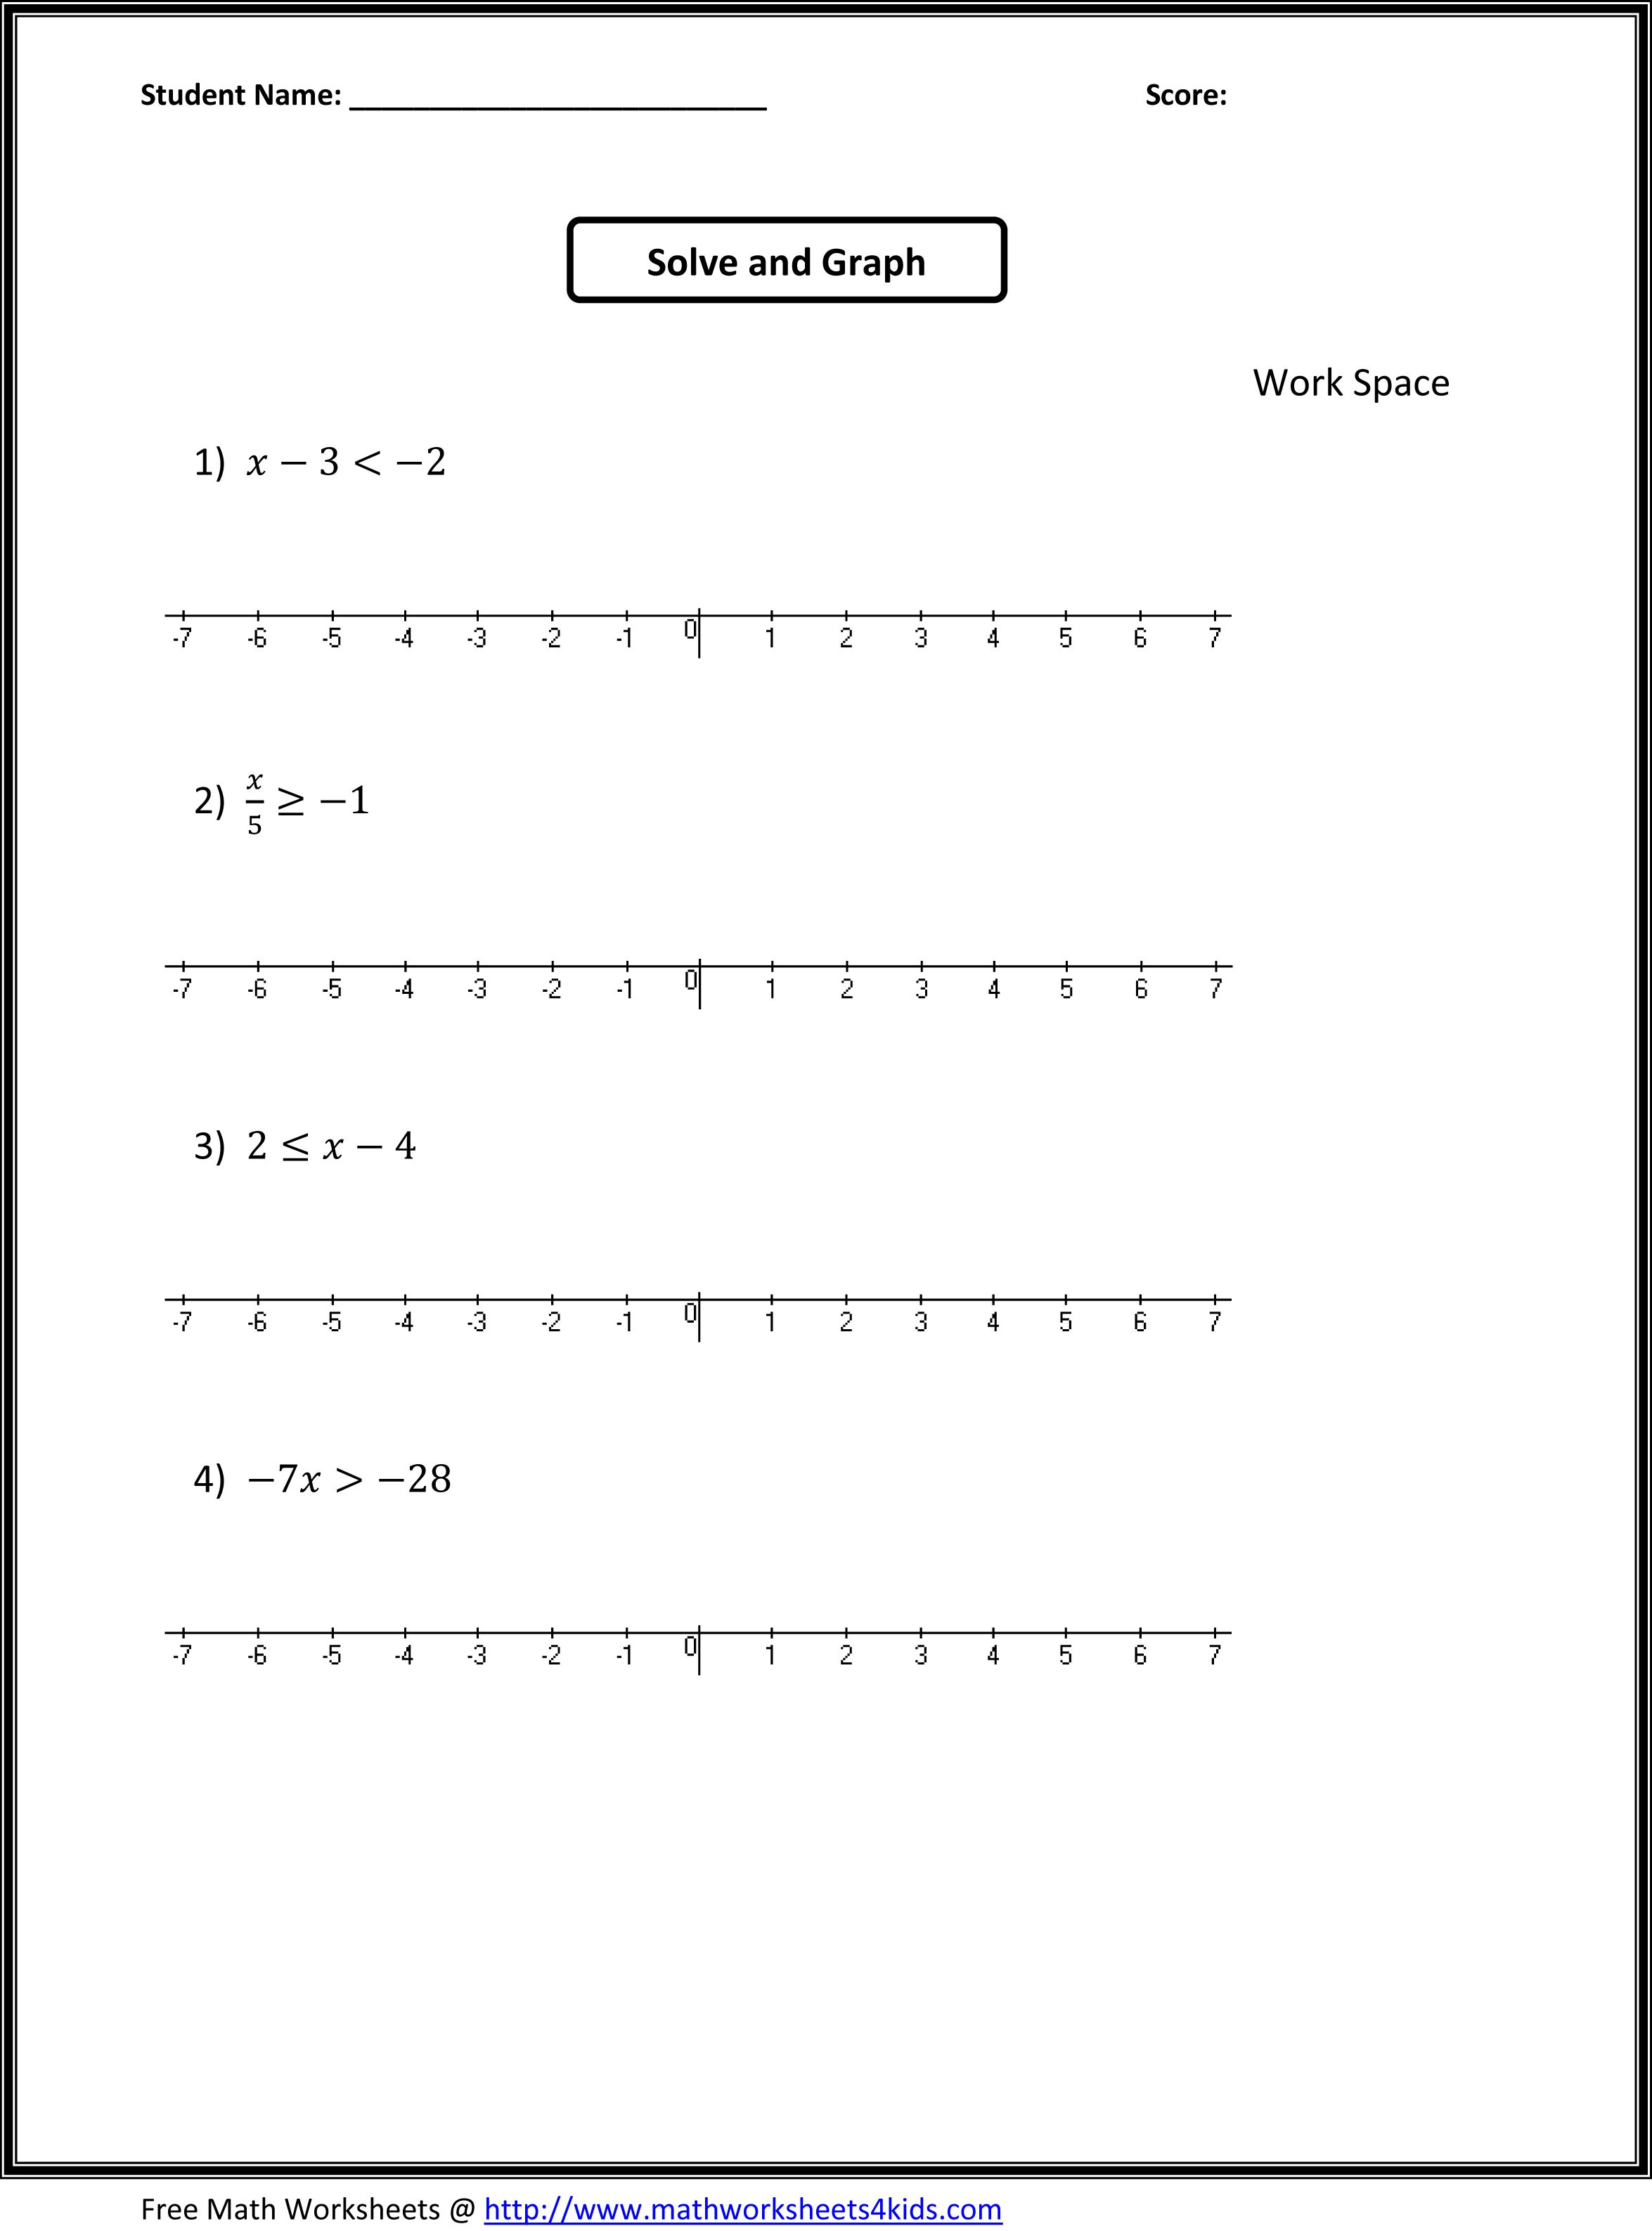 Teach Child How To Read Free Printable Math Worksheets